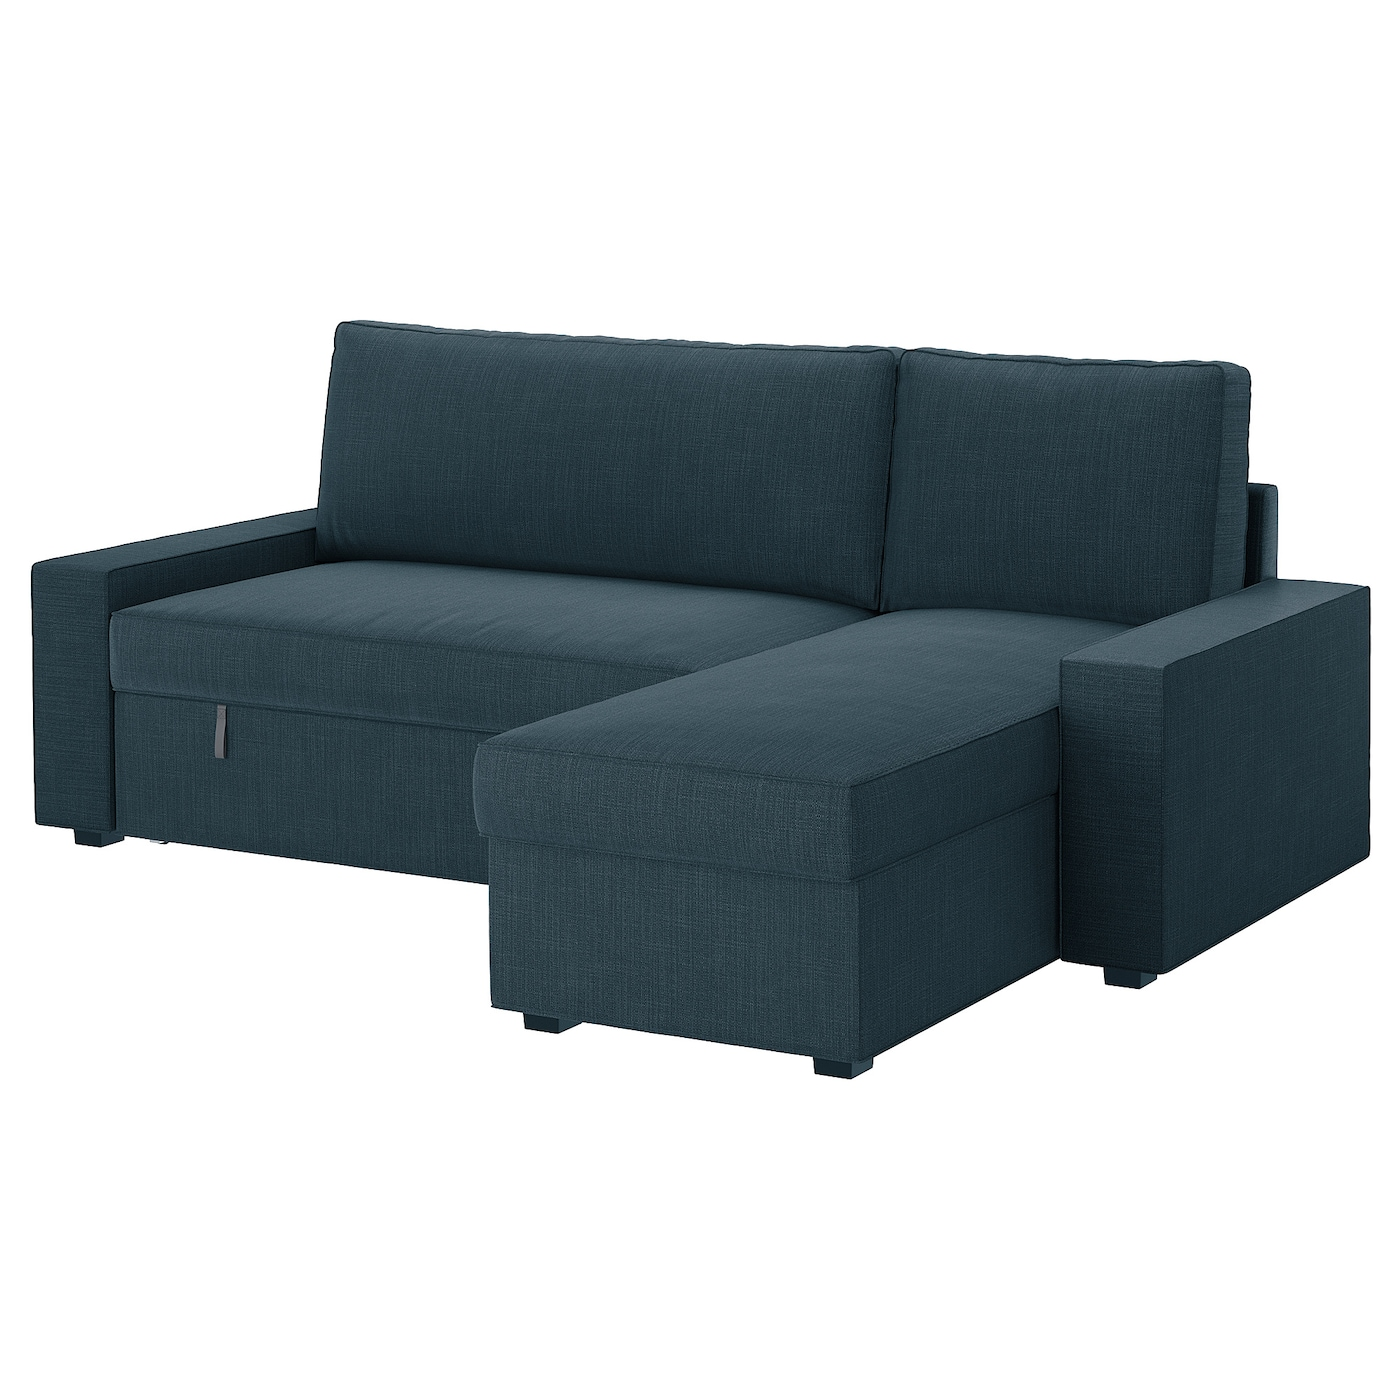 vilasund sofa bed with chaise longue hillared dark blue ikea. Black Bedroom Furniture Sets. Home Design Ideas